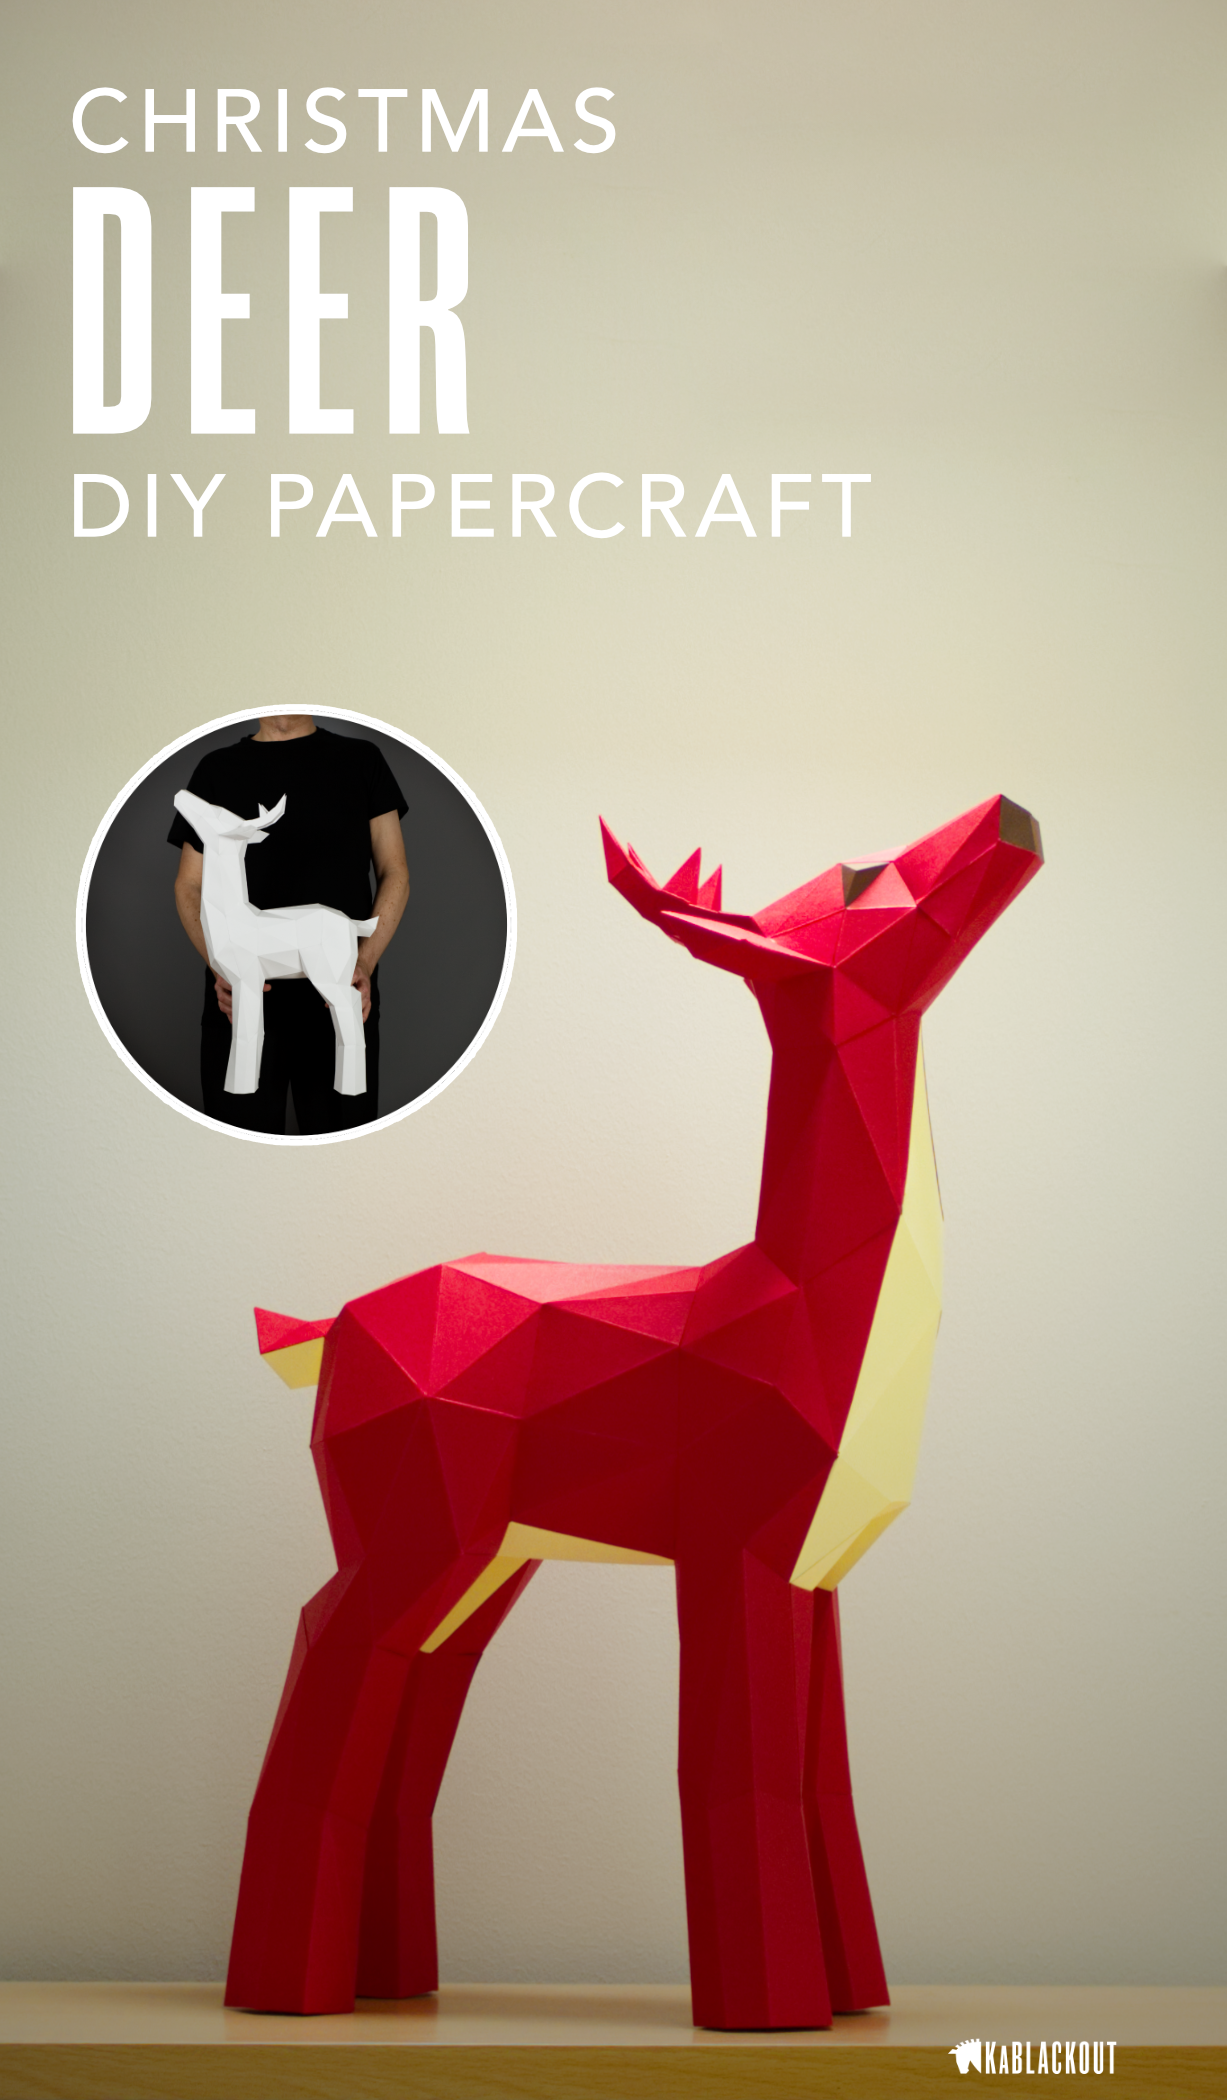 Deer Papercraft , Papercraft Deer, DIY Deer, Low Poly Deer, Deer ...